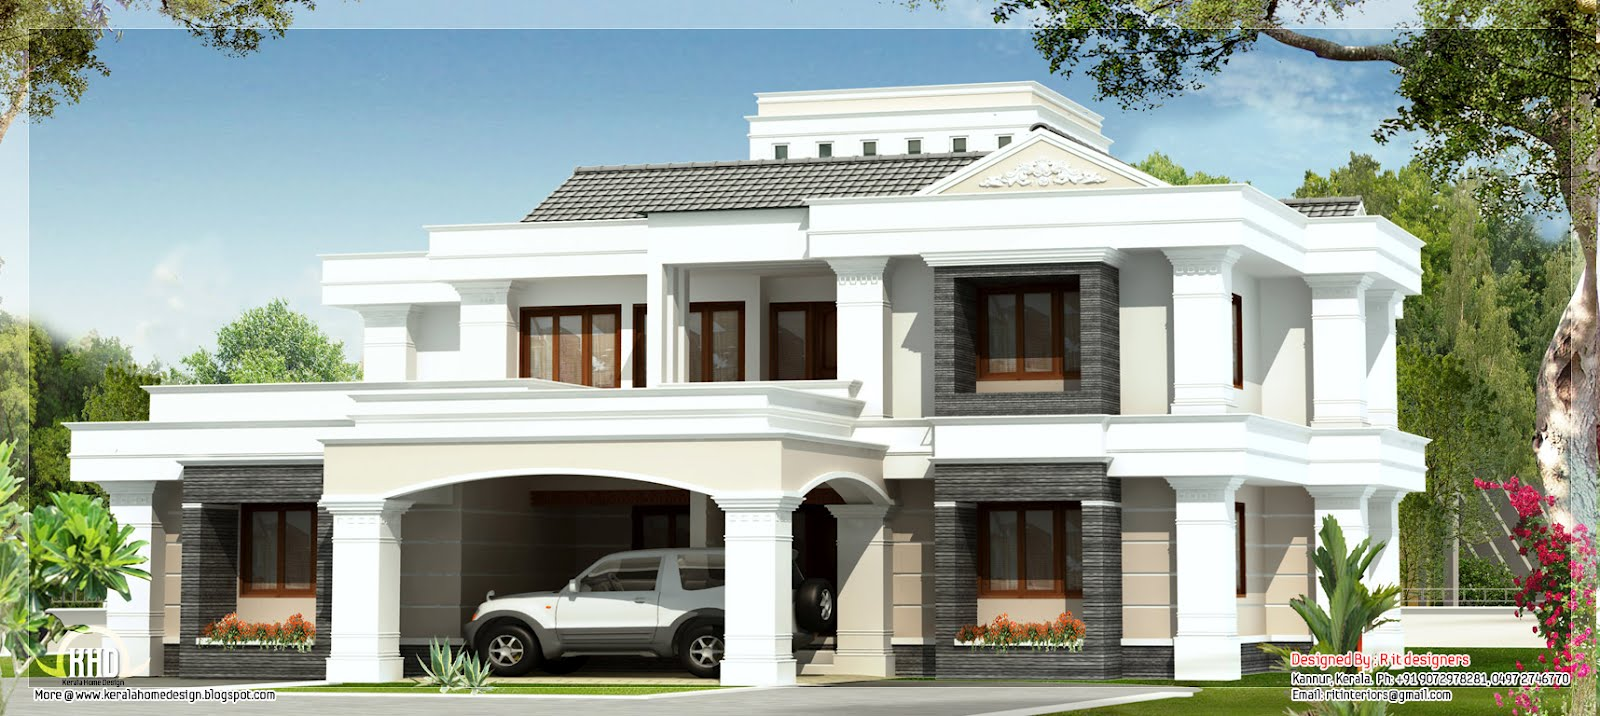 Design Luxury House Double Floor 4 Bedroom House